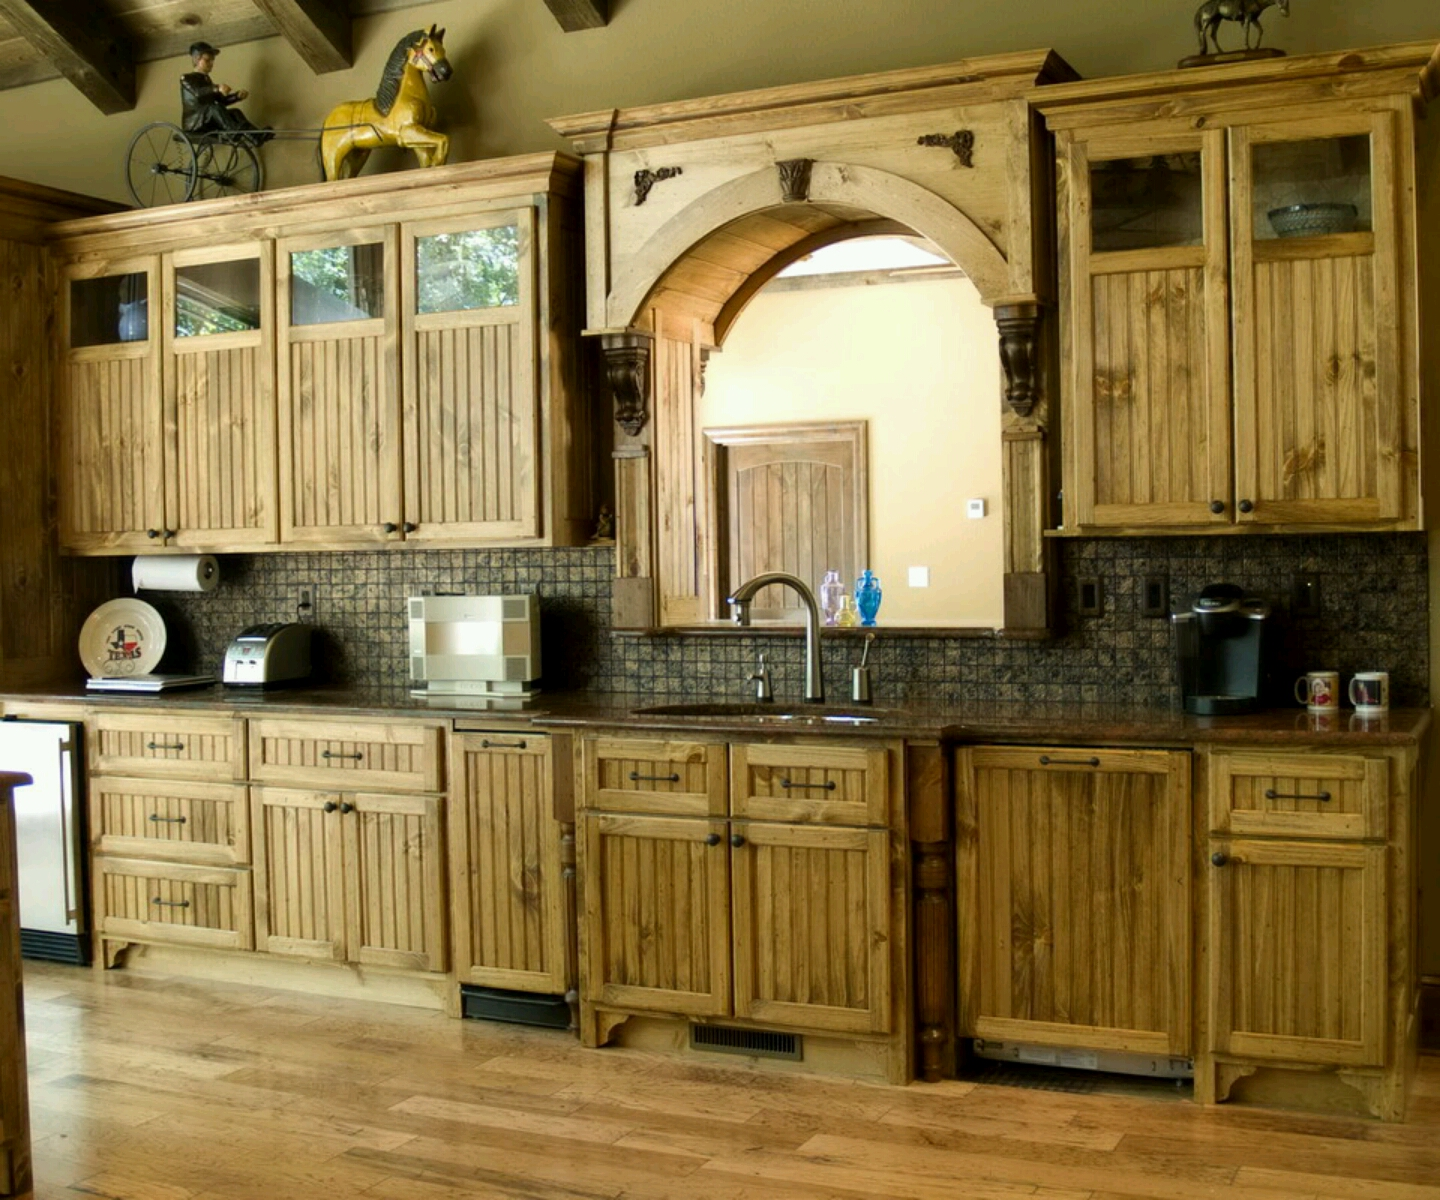 Modern wooden kitchen cabinets designs furniture gallery - Cupboards made from pallets ...